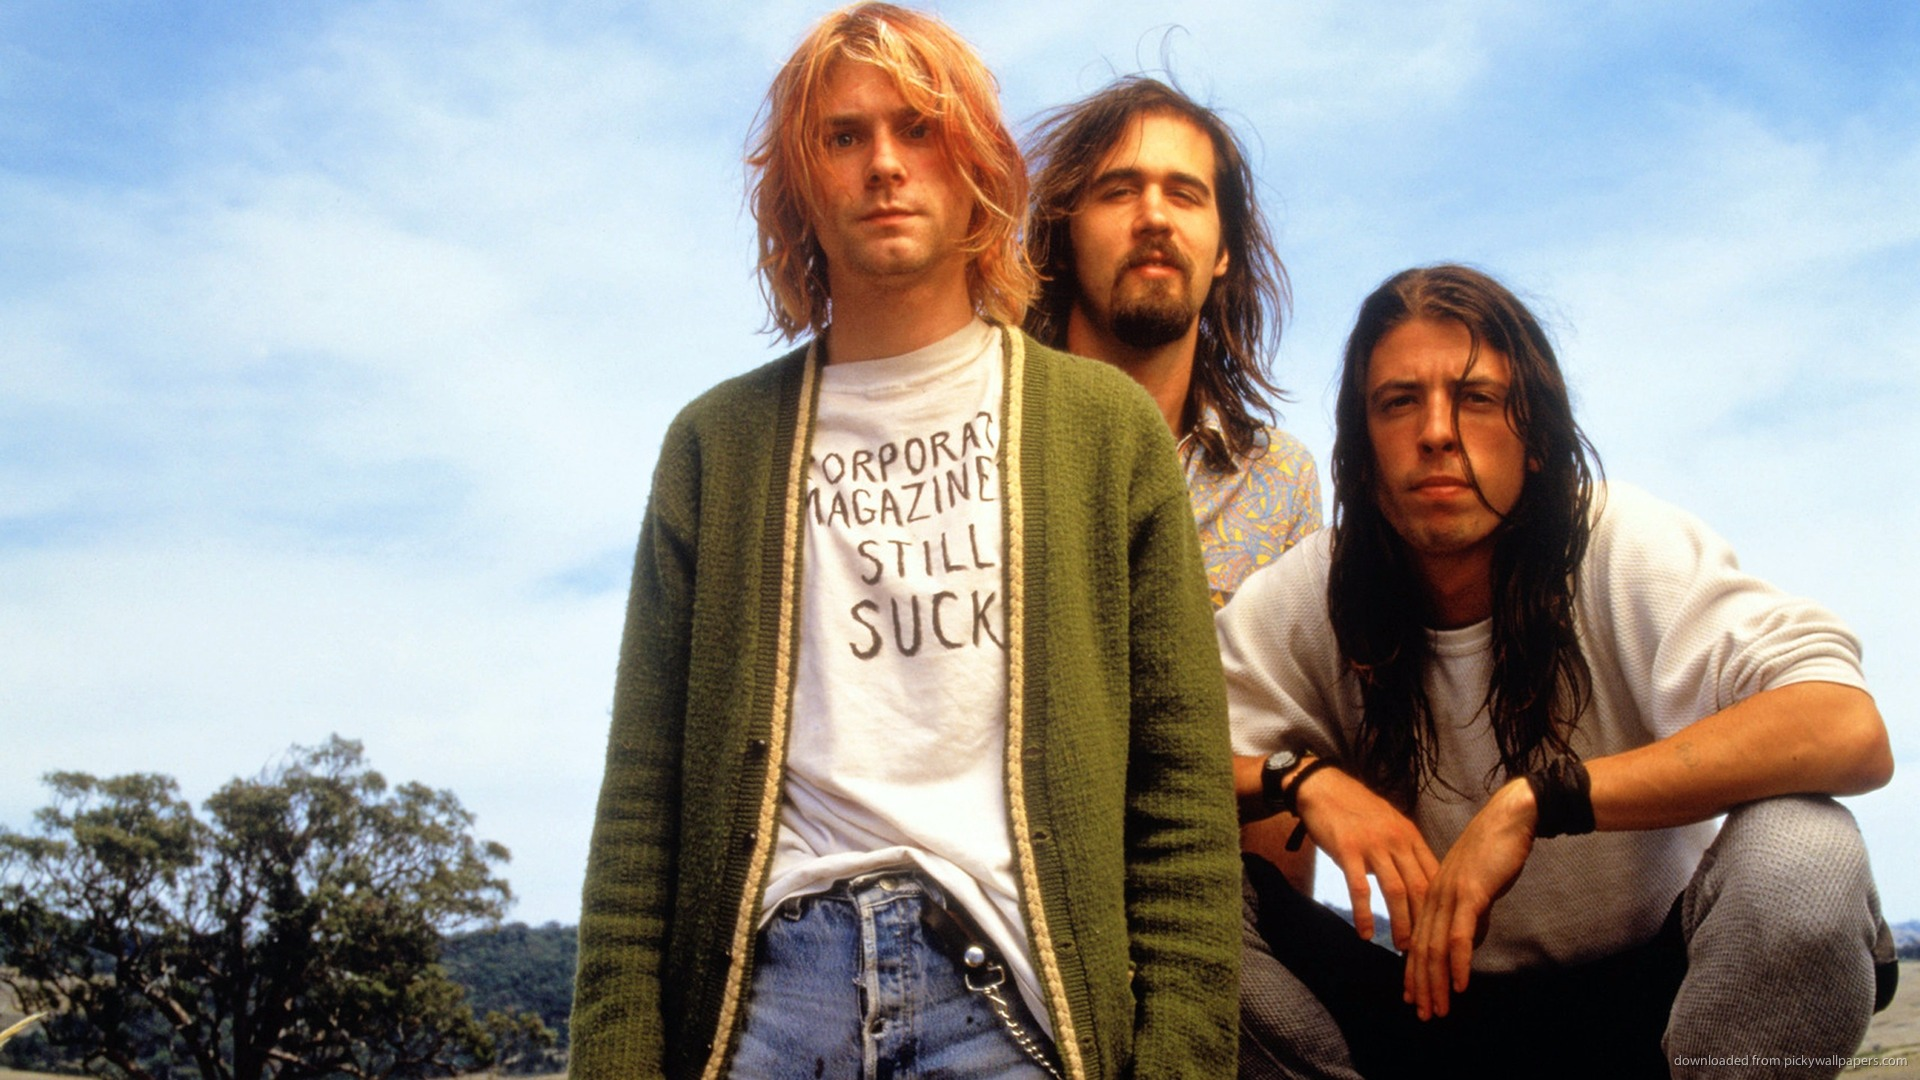 Nirvana Songs Are About To Be Turned Into A 90s Grunge